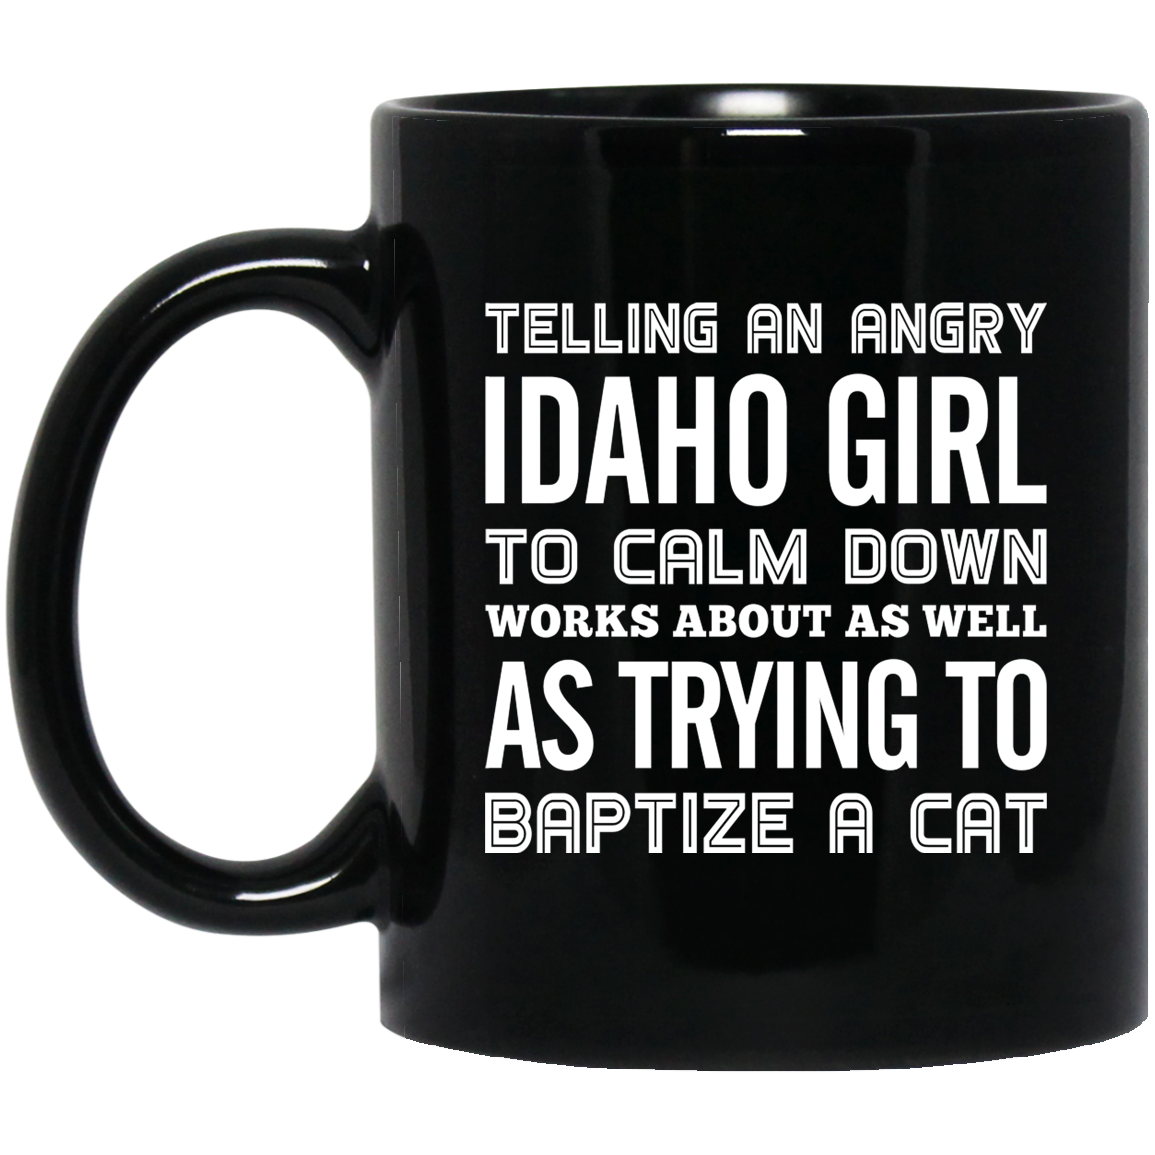 TELLING AN ANGRY IDAHO GIRL TO CALM DOWN